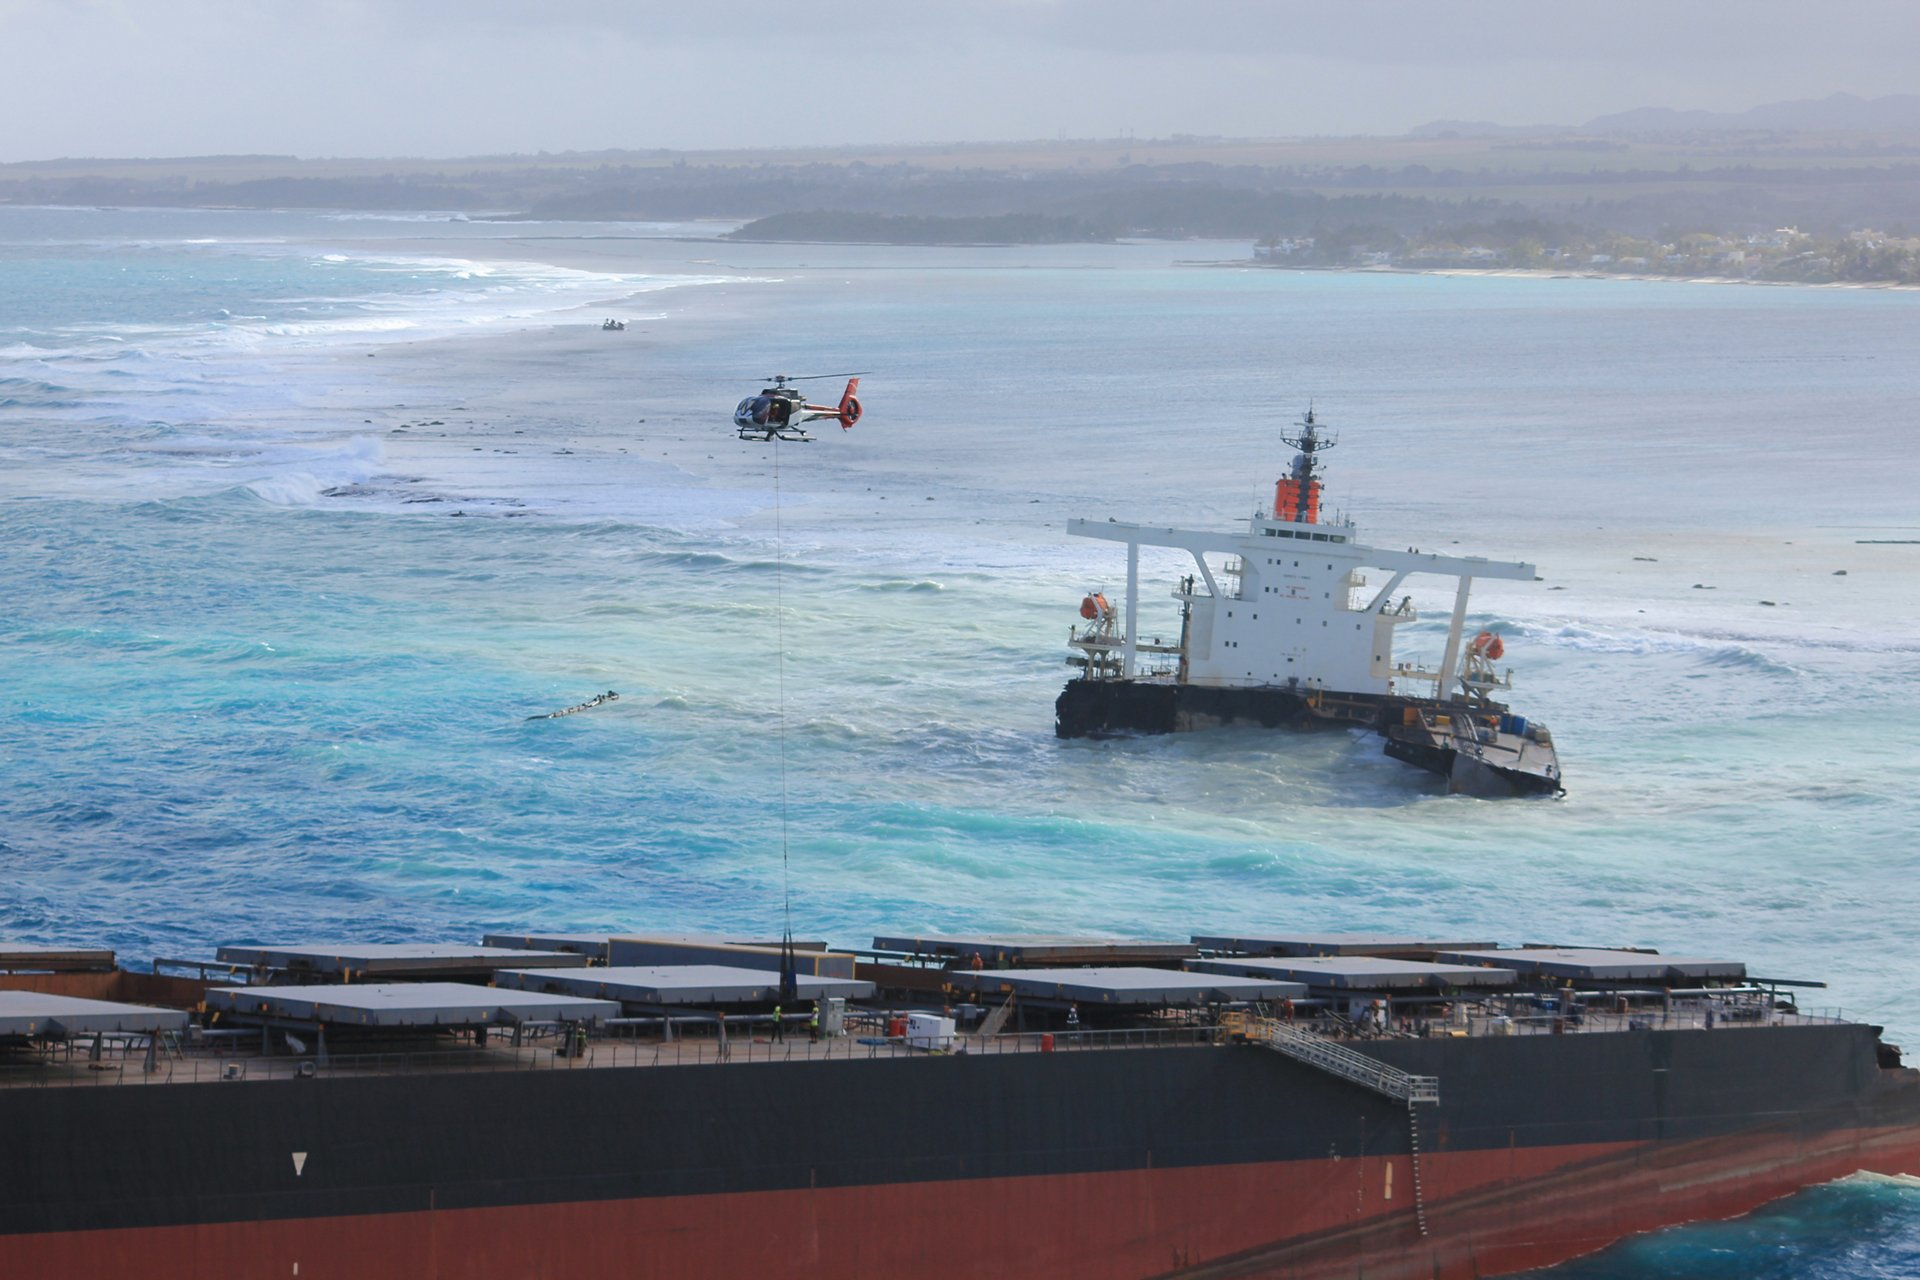 On 25 July 2020, the Japanese bulk carrier Wakashio ran aground on a coral reef in Mauritius. In the weeks that followed, the ship began leaking oil, and broke apart in mid August.